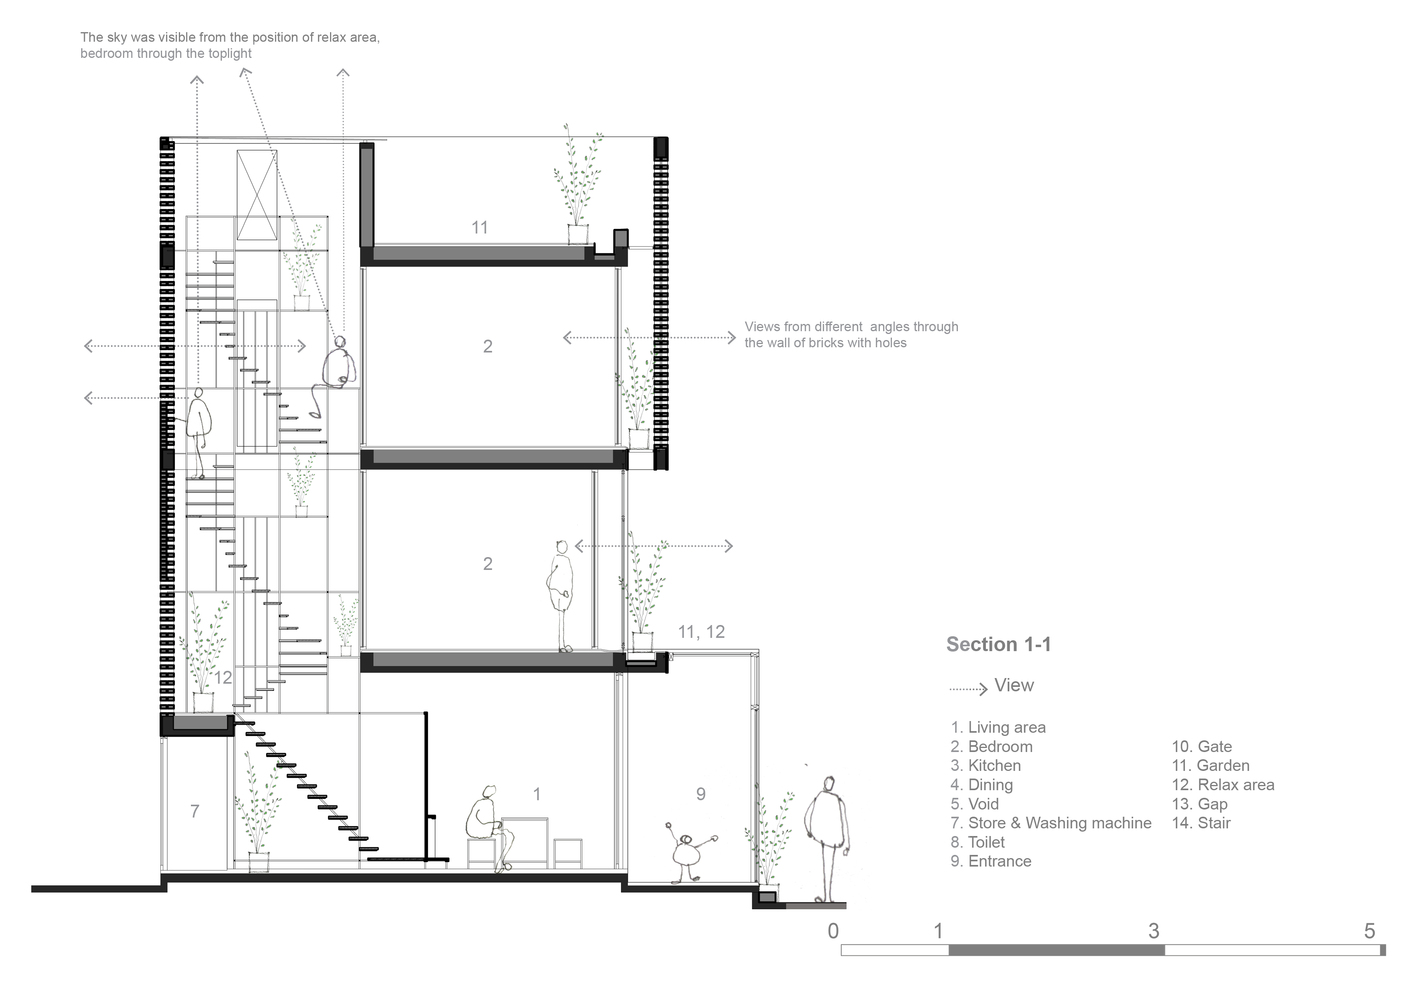 hight resolution of autocad toilet elevation drawing